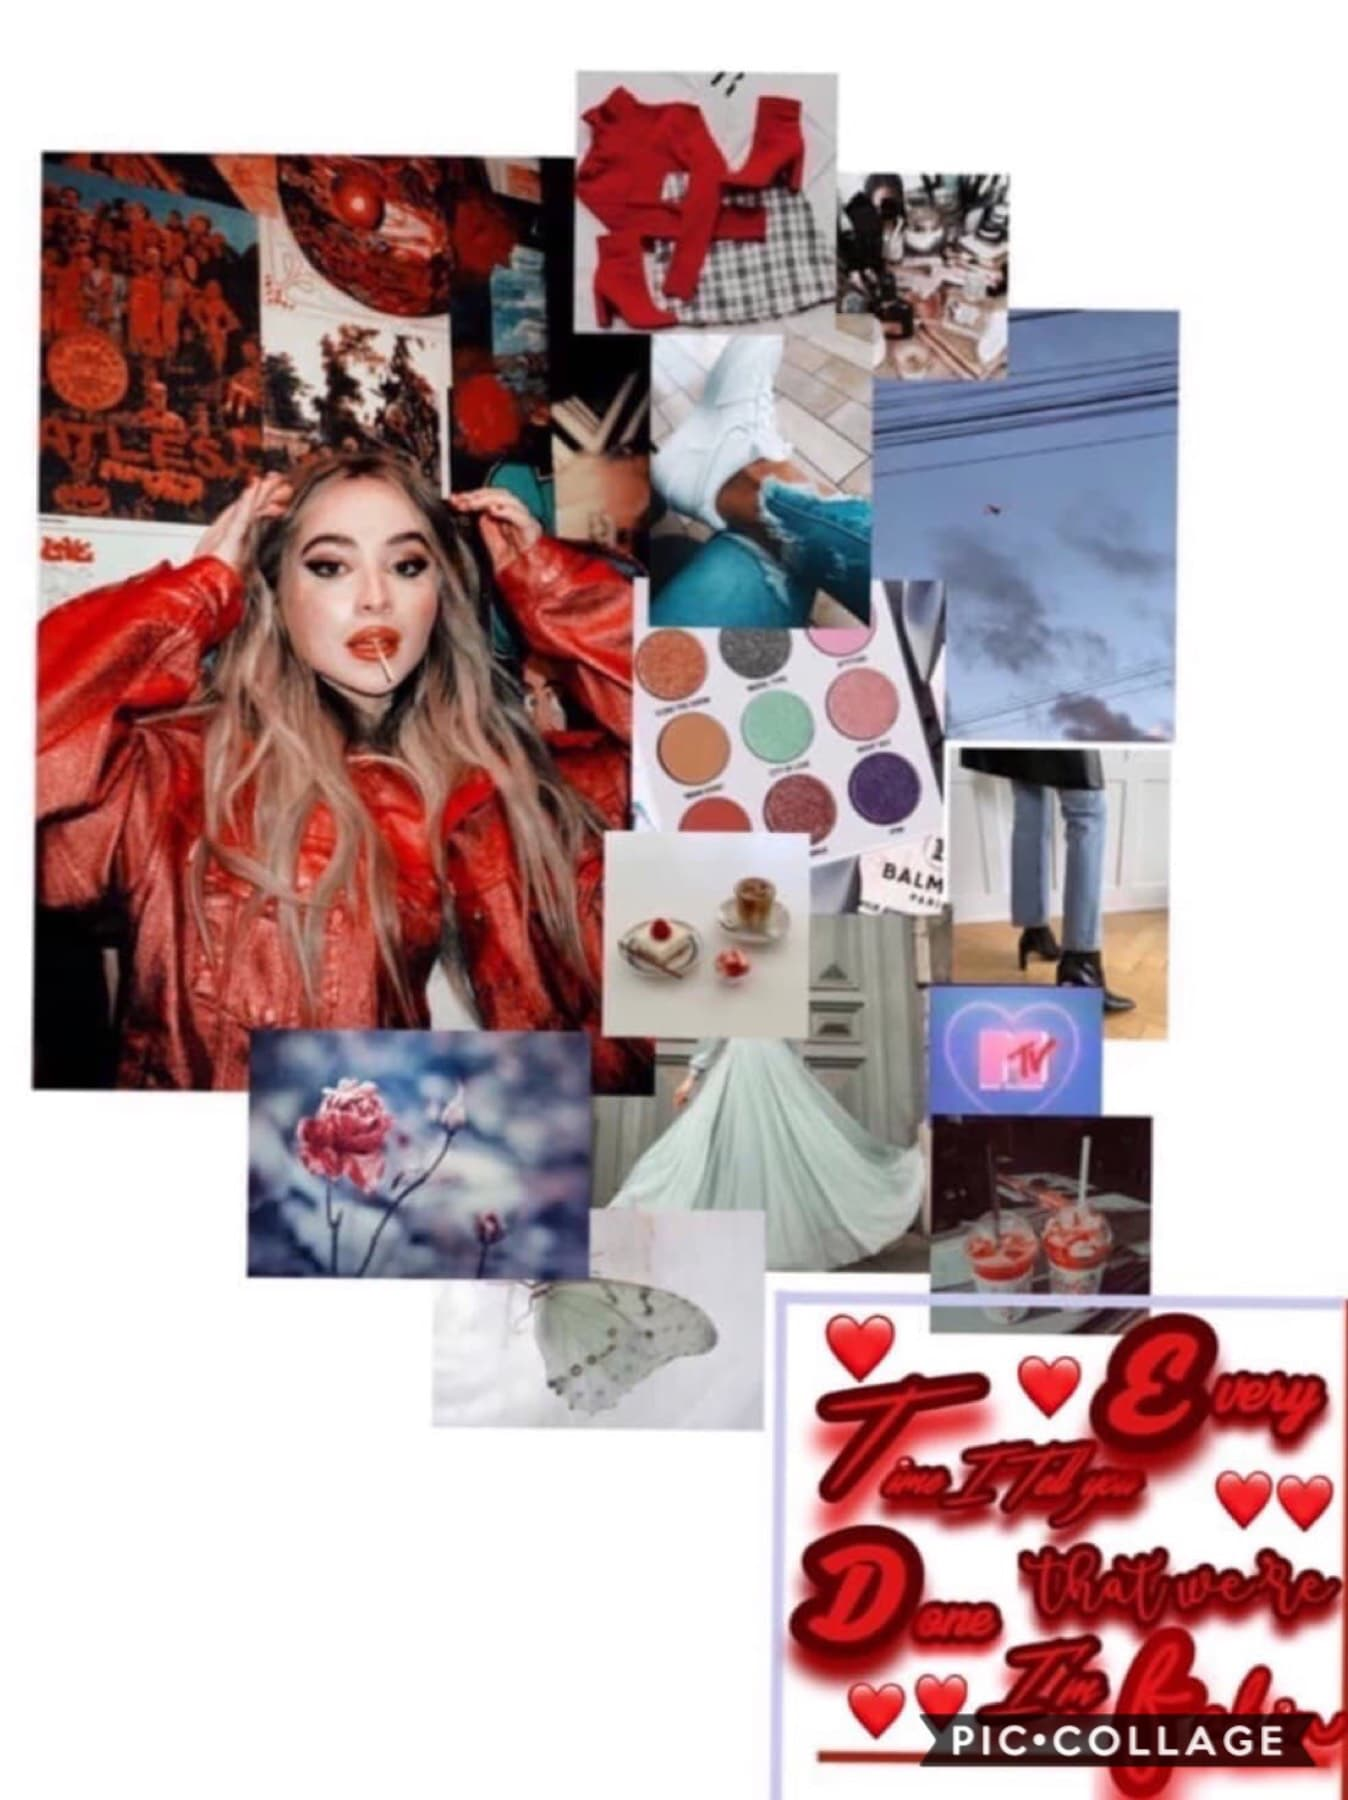 A beautiful collab with seaspray! Go follow right now! Her edits are so stunning and aesthetic I can't wait to collab again soon❤️🥰❤️😍